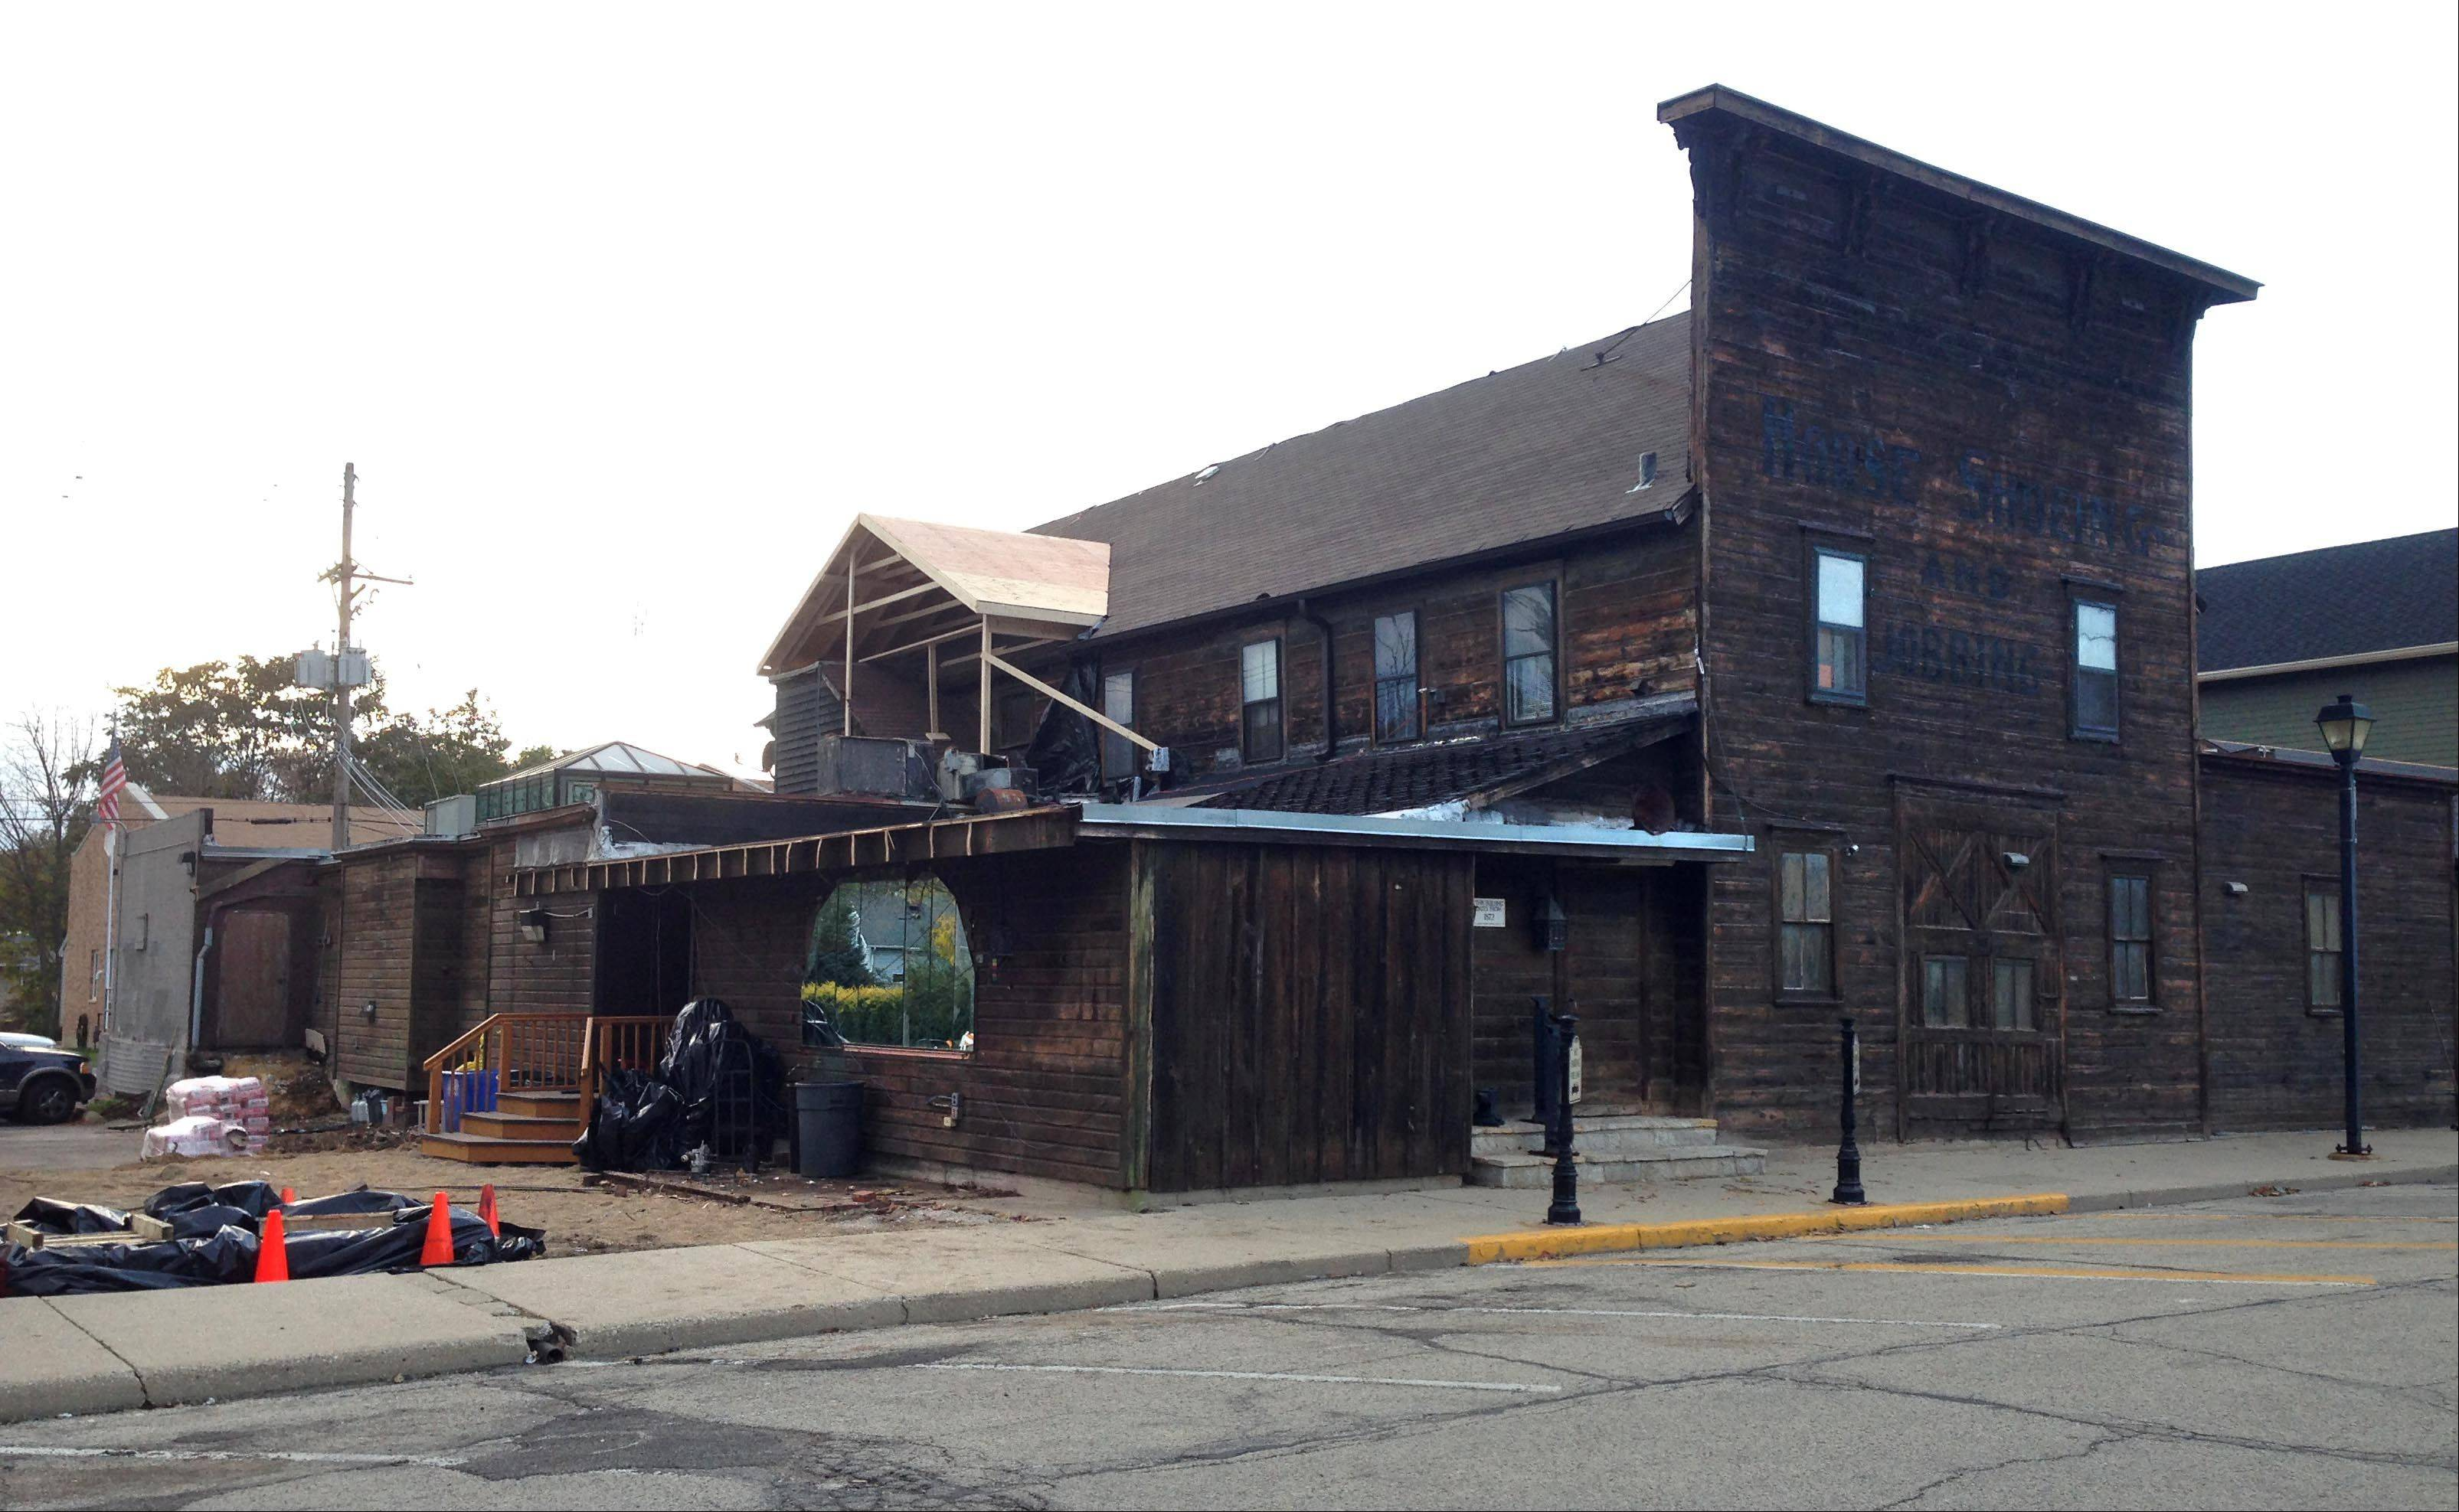 Renovations to the exterior of the Anvil Club in East Dundee started this week, thanks to a facade grant from the village. Tom Roeser, president and chief executive officer of Otto Engineering, and a member of the Anvil Club, said Thursday he is trying to buy the club.